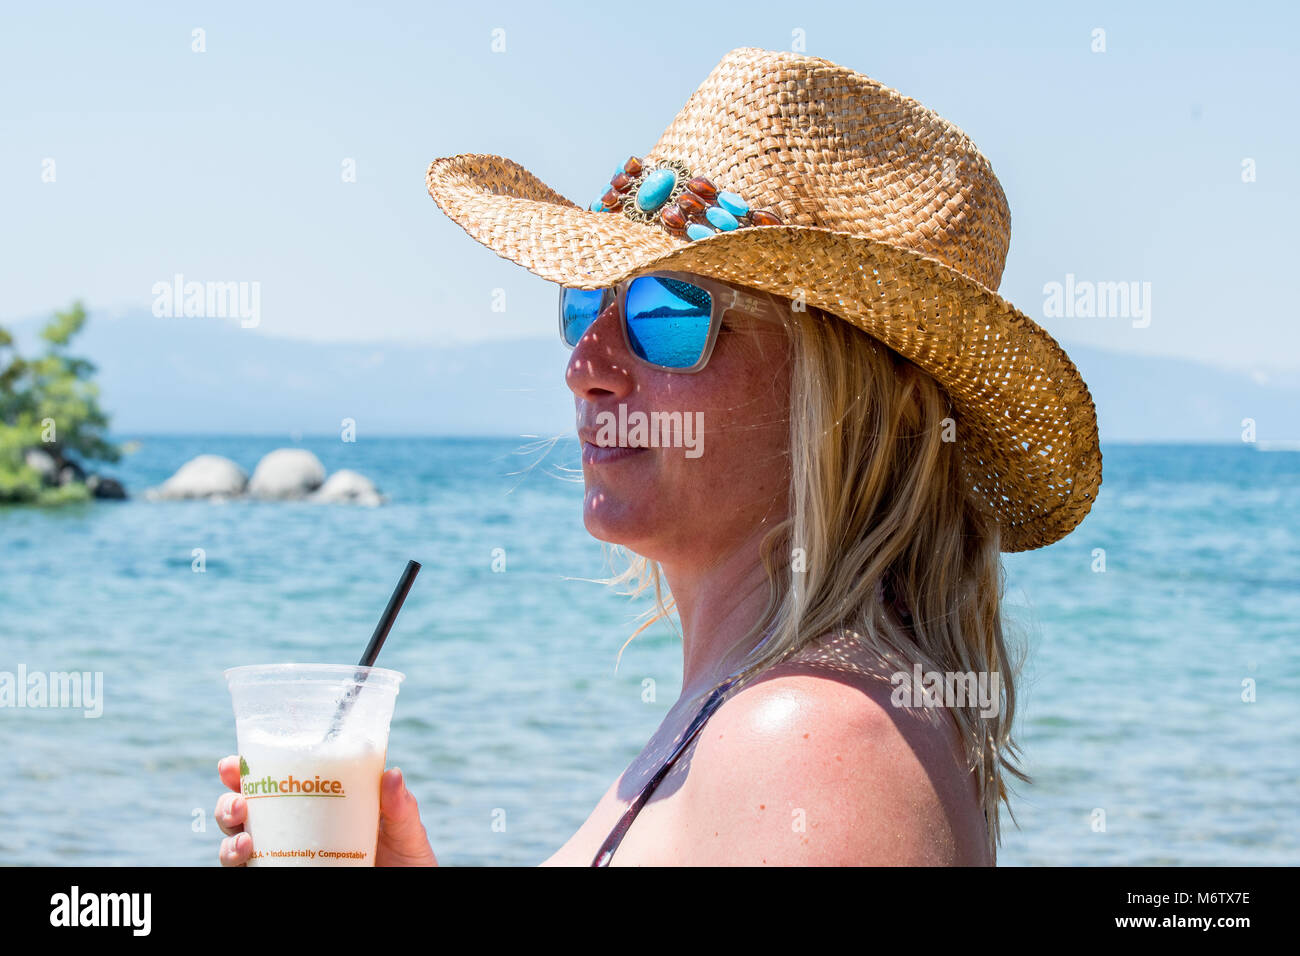 staying cool - Stock Image